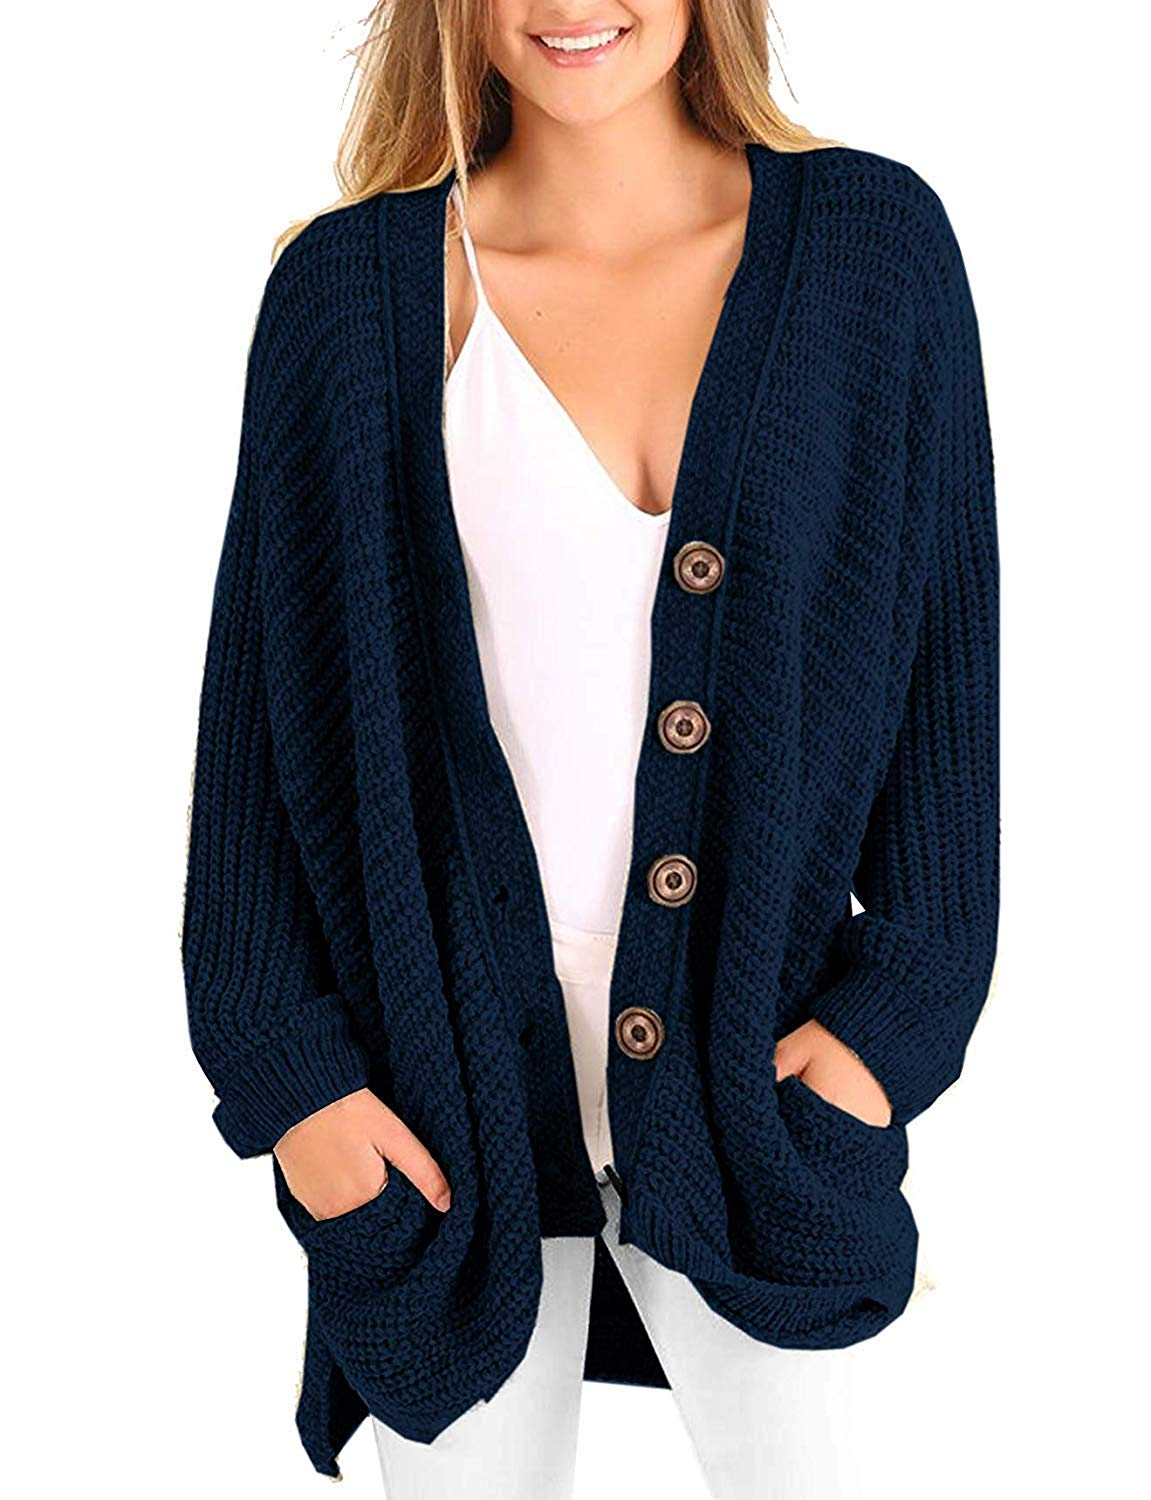 2fca95bce11f33 Get Quotations · Inorin Womens Plus Size Cardigan Boyfriend Open Front  Button Down Knit Cardigan Sweaters with Pockets